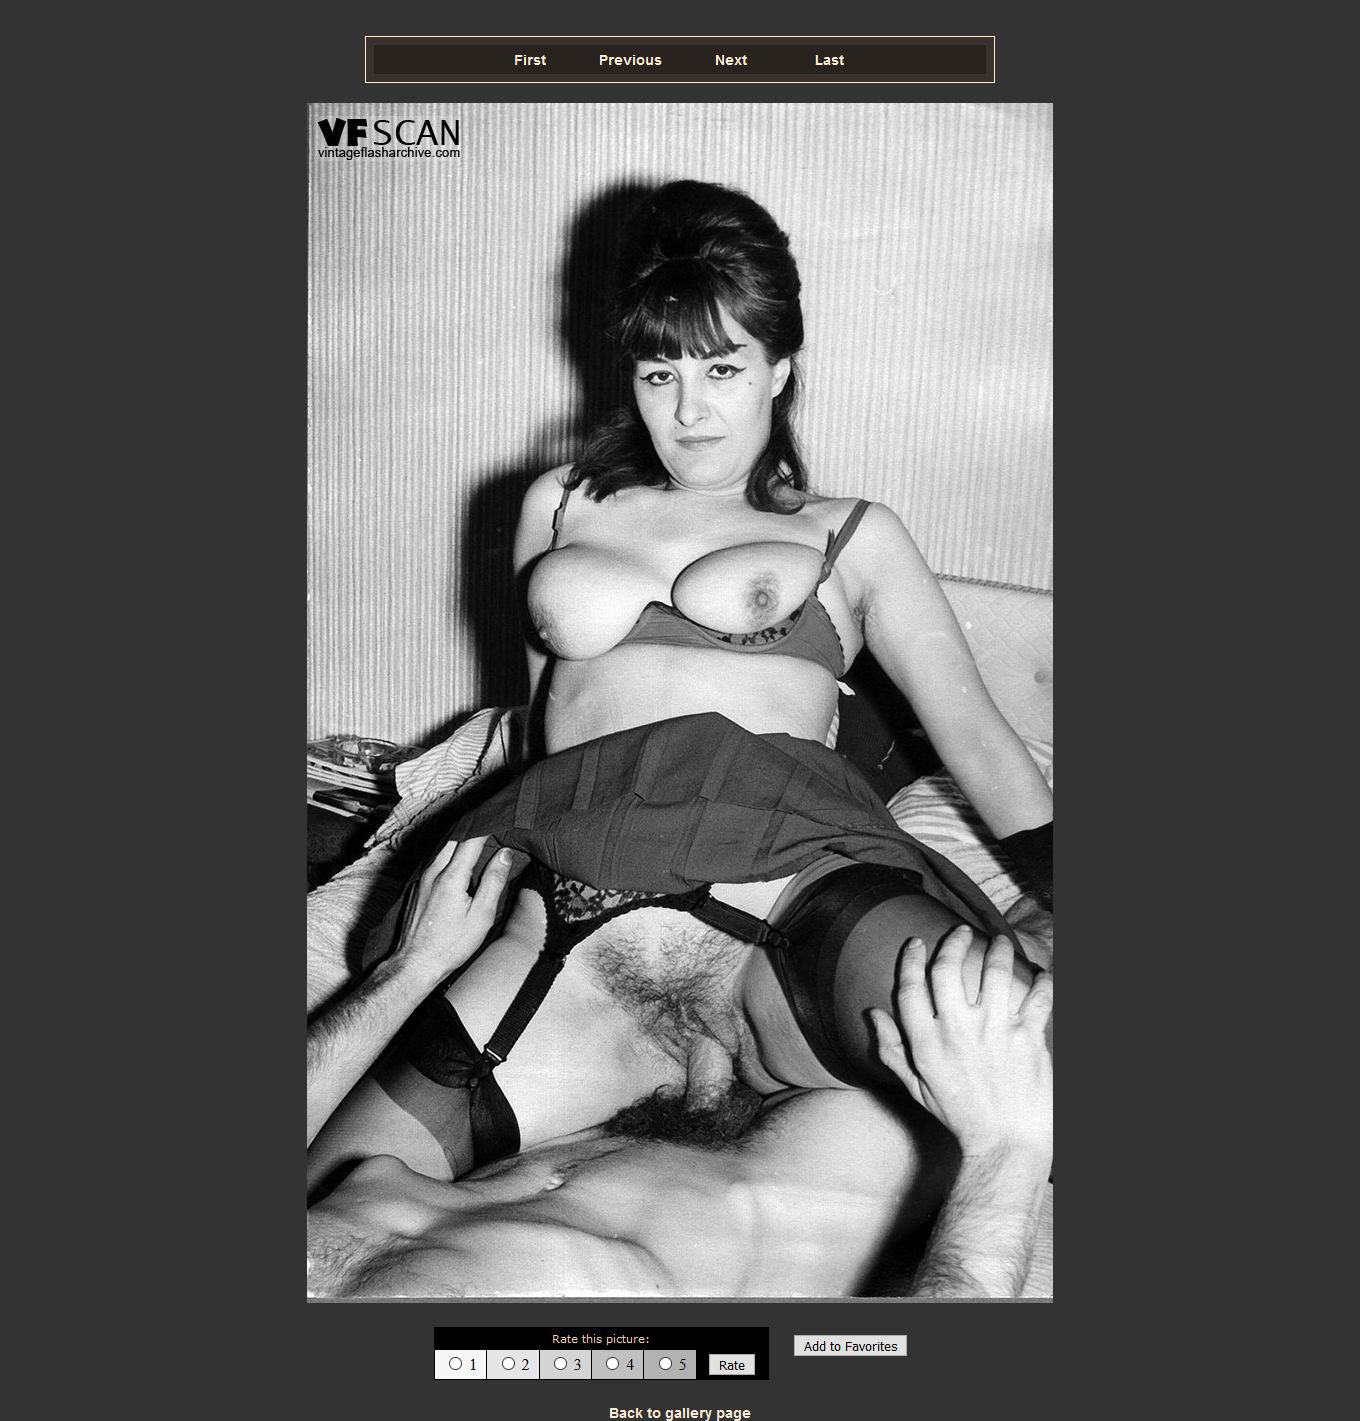 Vintage Flash Archive Has Hot Vintage Porn Pics From The -7169